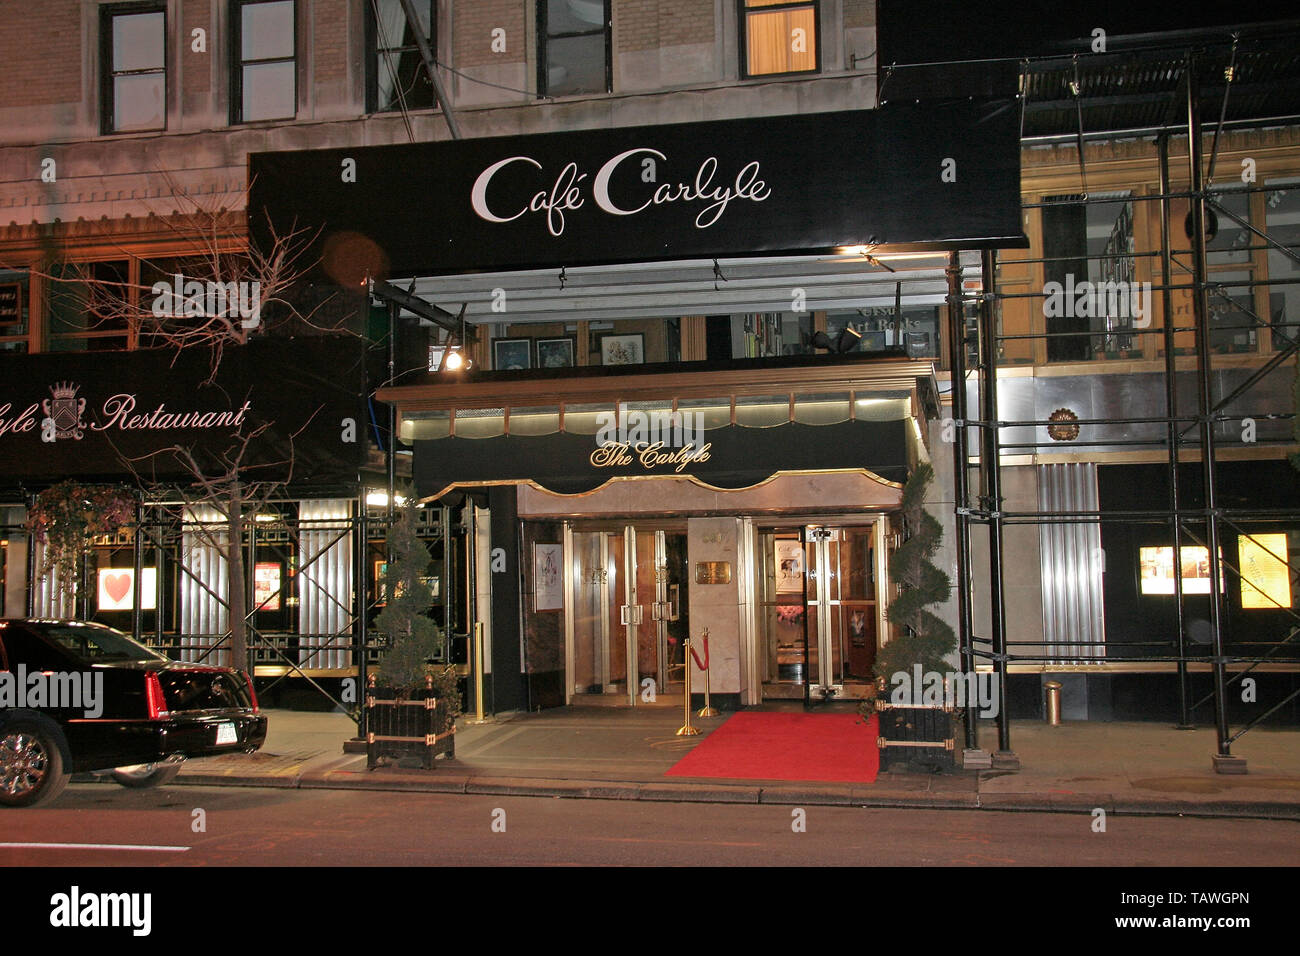 New York, USA. 24 February, 2008. Atmosphere at the 2008 NYC Oscar Party at The Carlyle. Credit: Steve Mack/Alamy - Stock Image